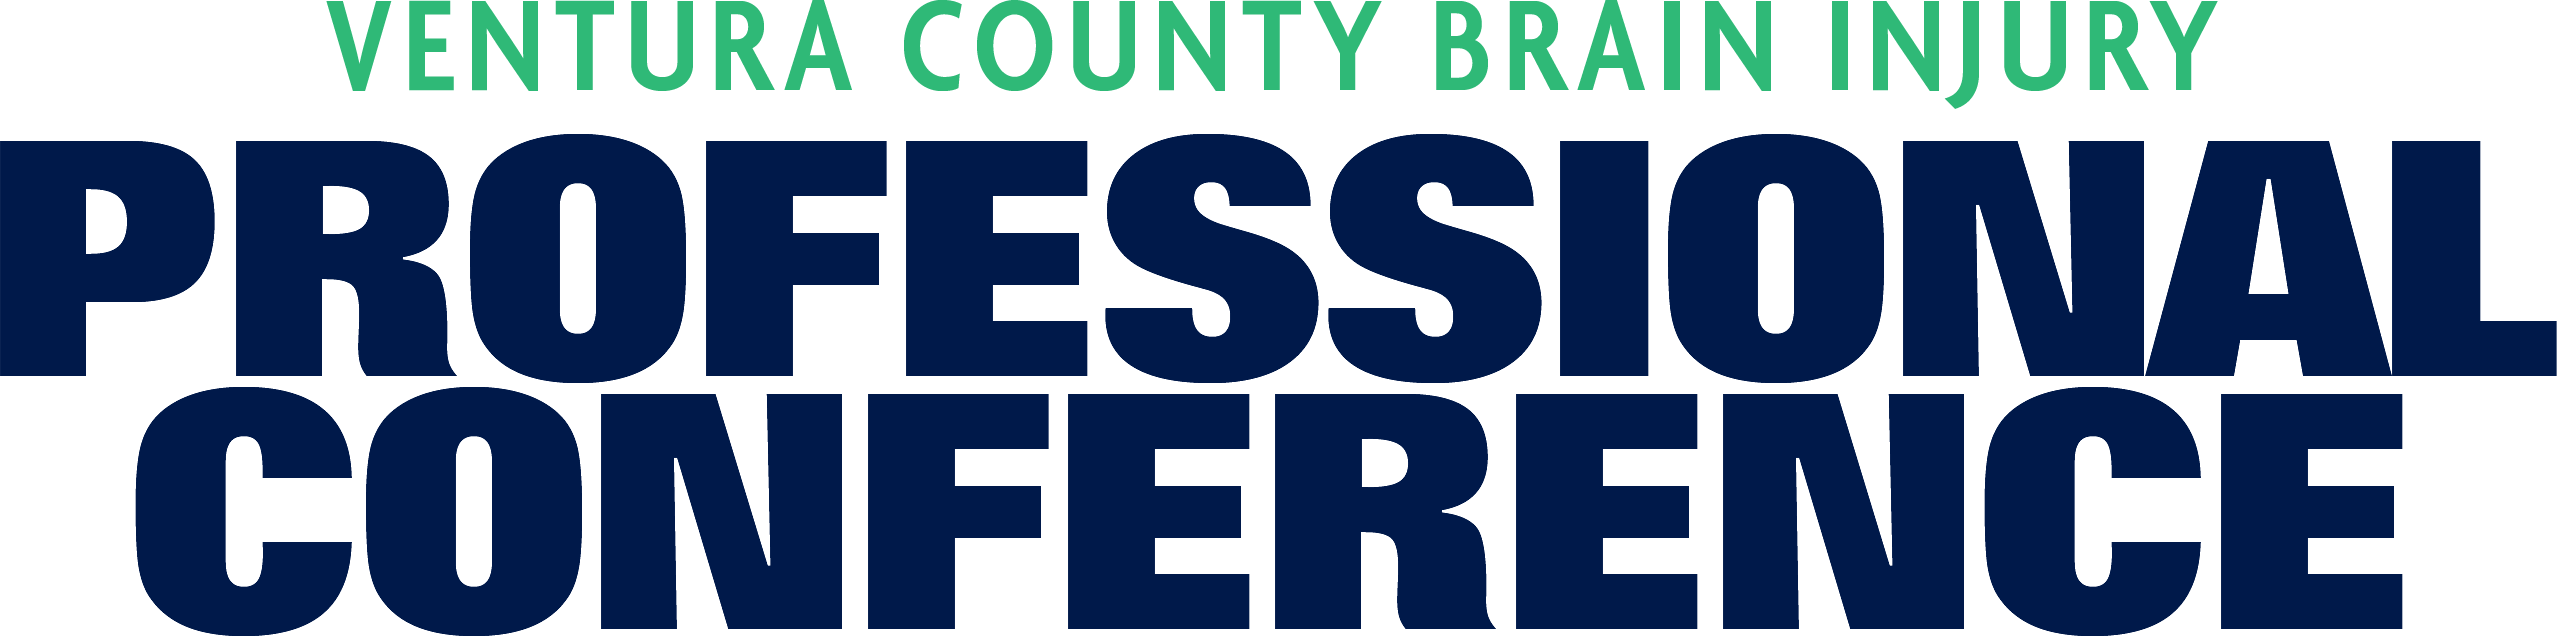 Logo of Ventura County Brain Injury Professional Conference.